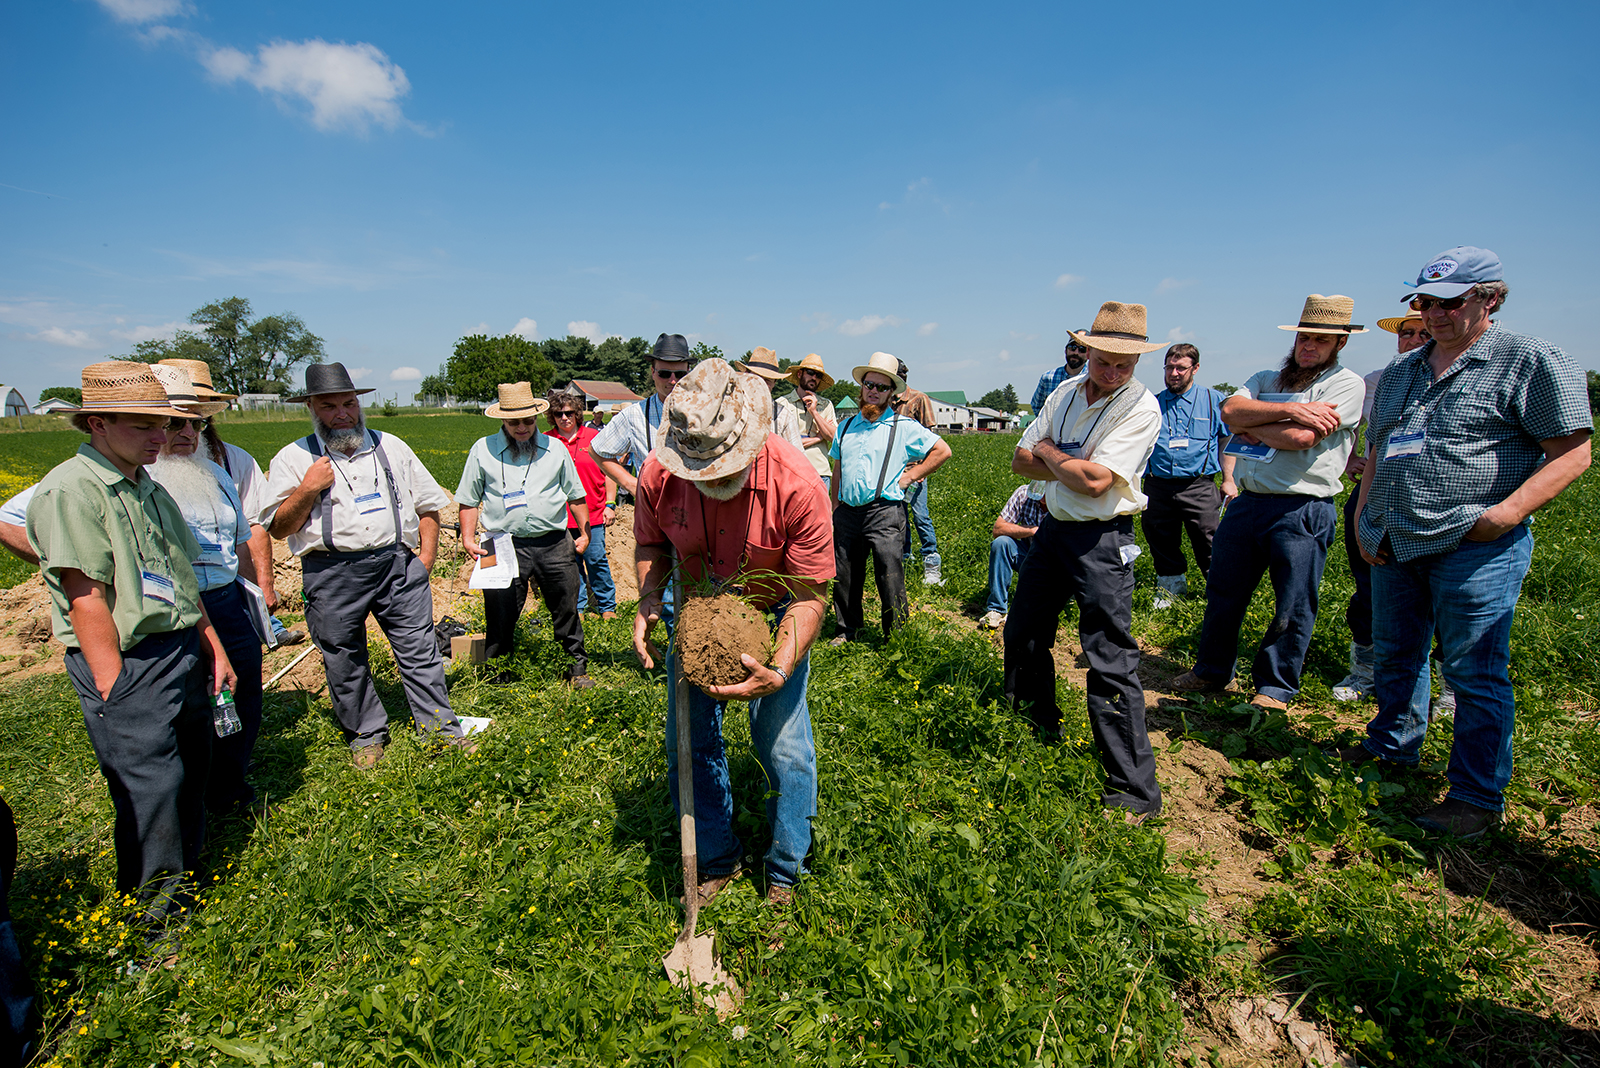 Organic Valley farmers gather around Soil Agronomist Mark Kopecky on a blue-sky day at a soil and pasture workshop in Ohio.